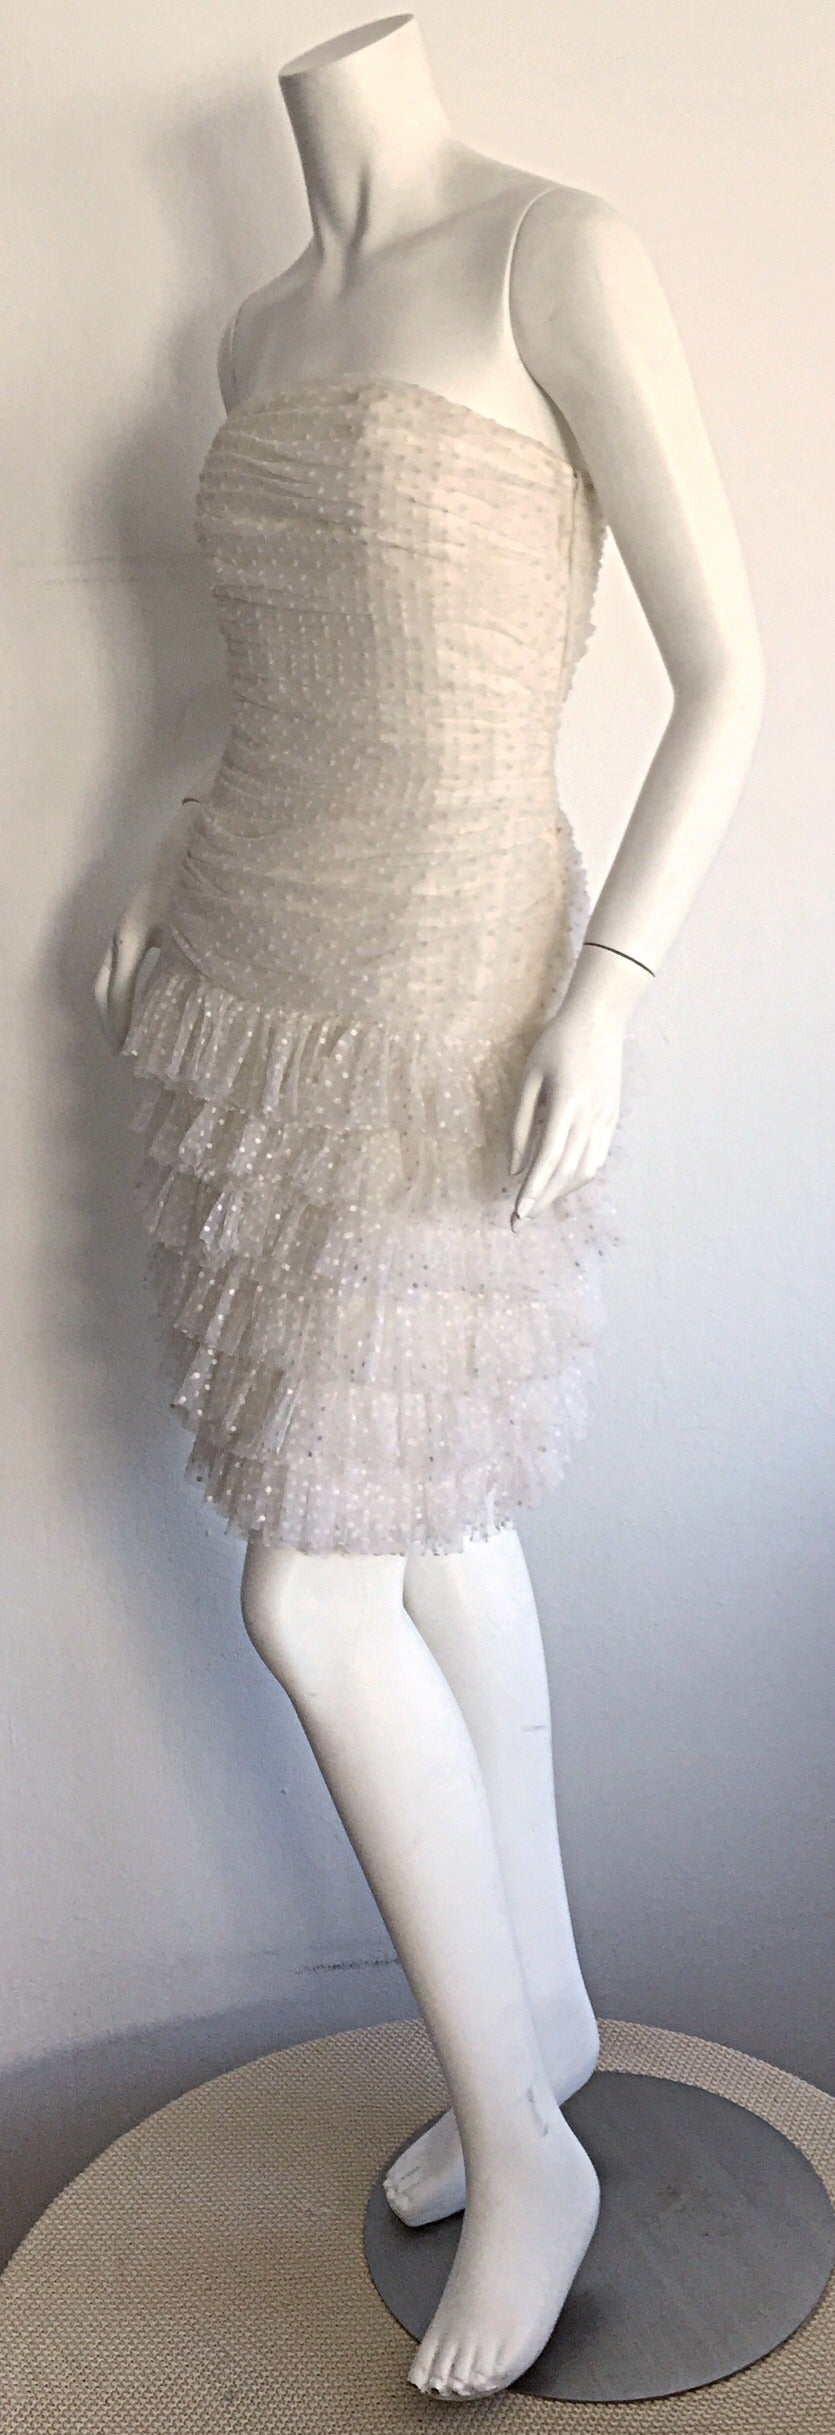 1990s Carolyne Roehm White Polka Dot ' Feathered ' Strapless Wedding Dress 3